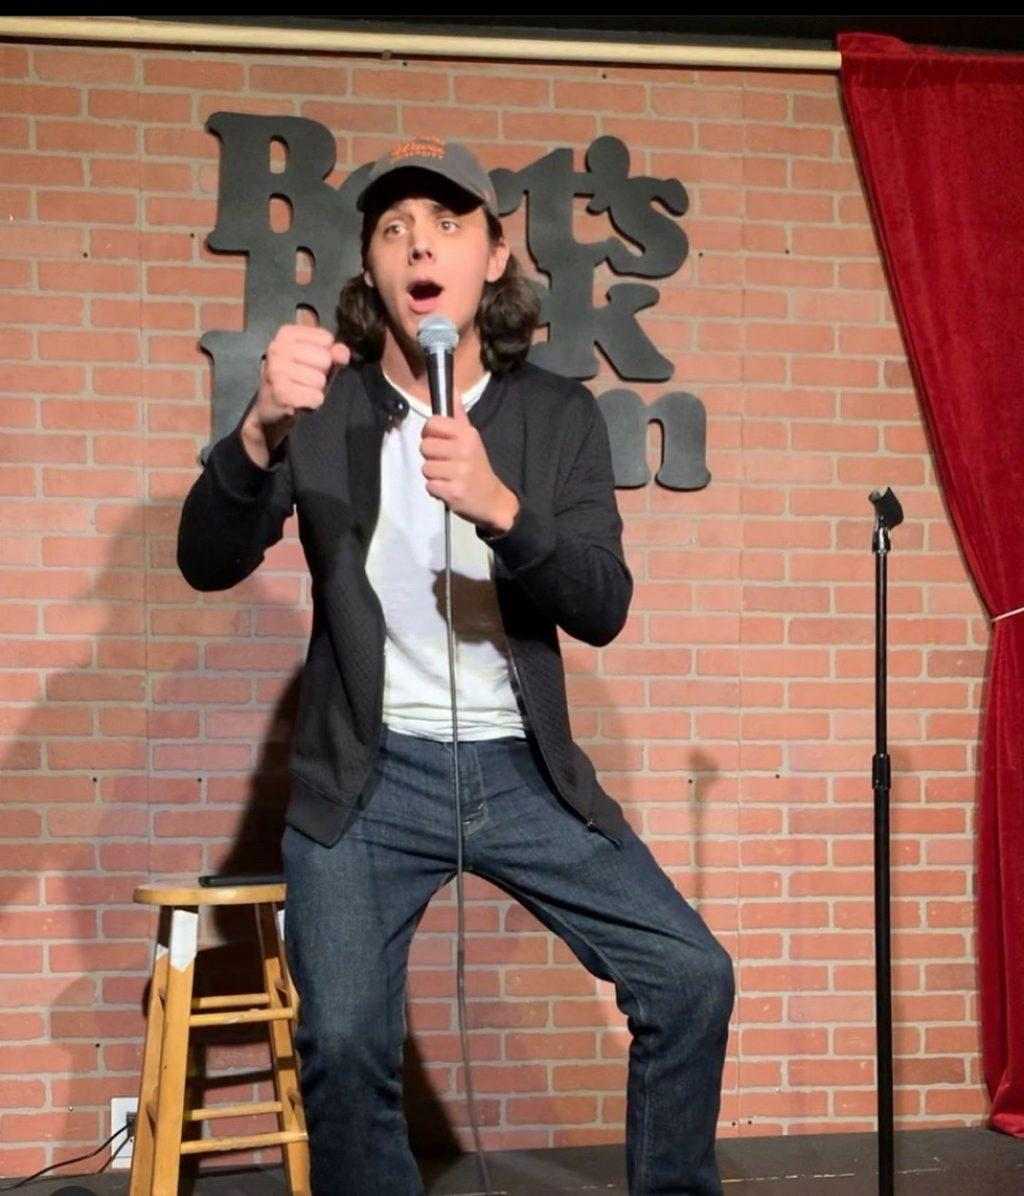 Senior Clayton Mattingly performs stand-up comedy at an open mic night at Bert's Backroom on Melrose Avenue. He has written his own material for his two-year stand-up comedy stint. Photo courtesy of Clayton Mattingly